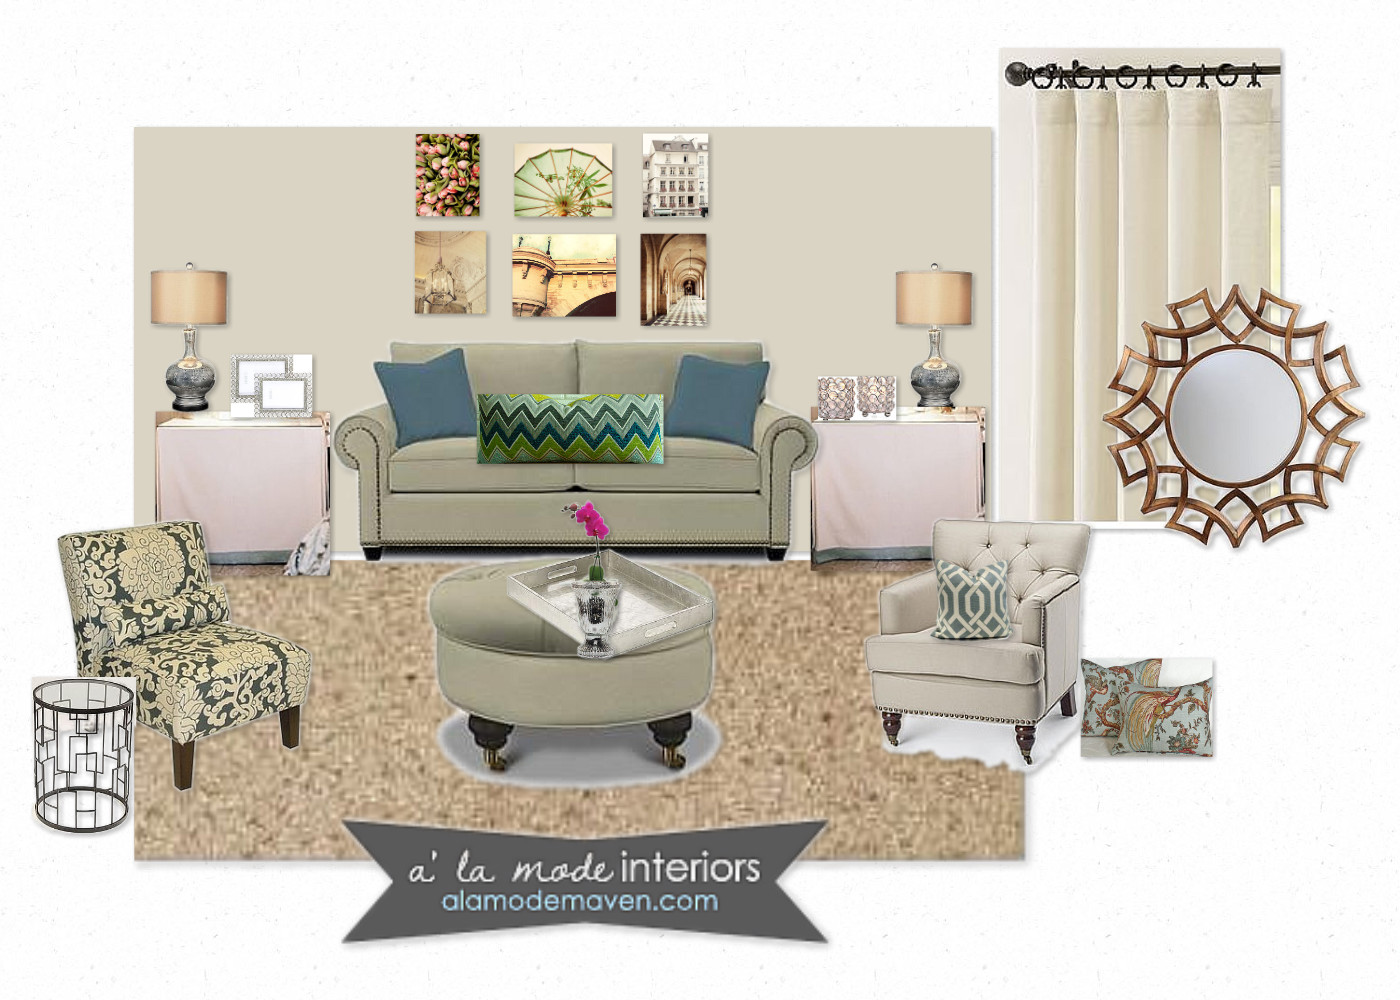 alamode: E- Design Of The Week- Horton Living Room